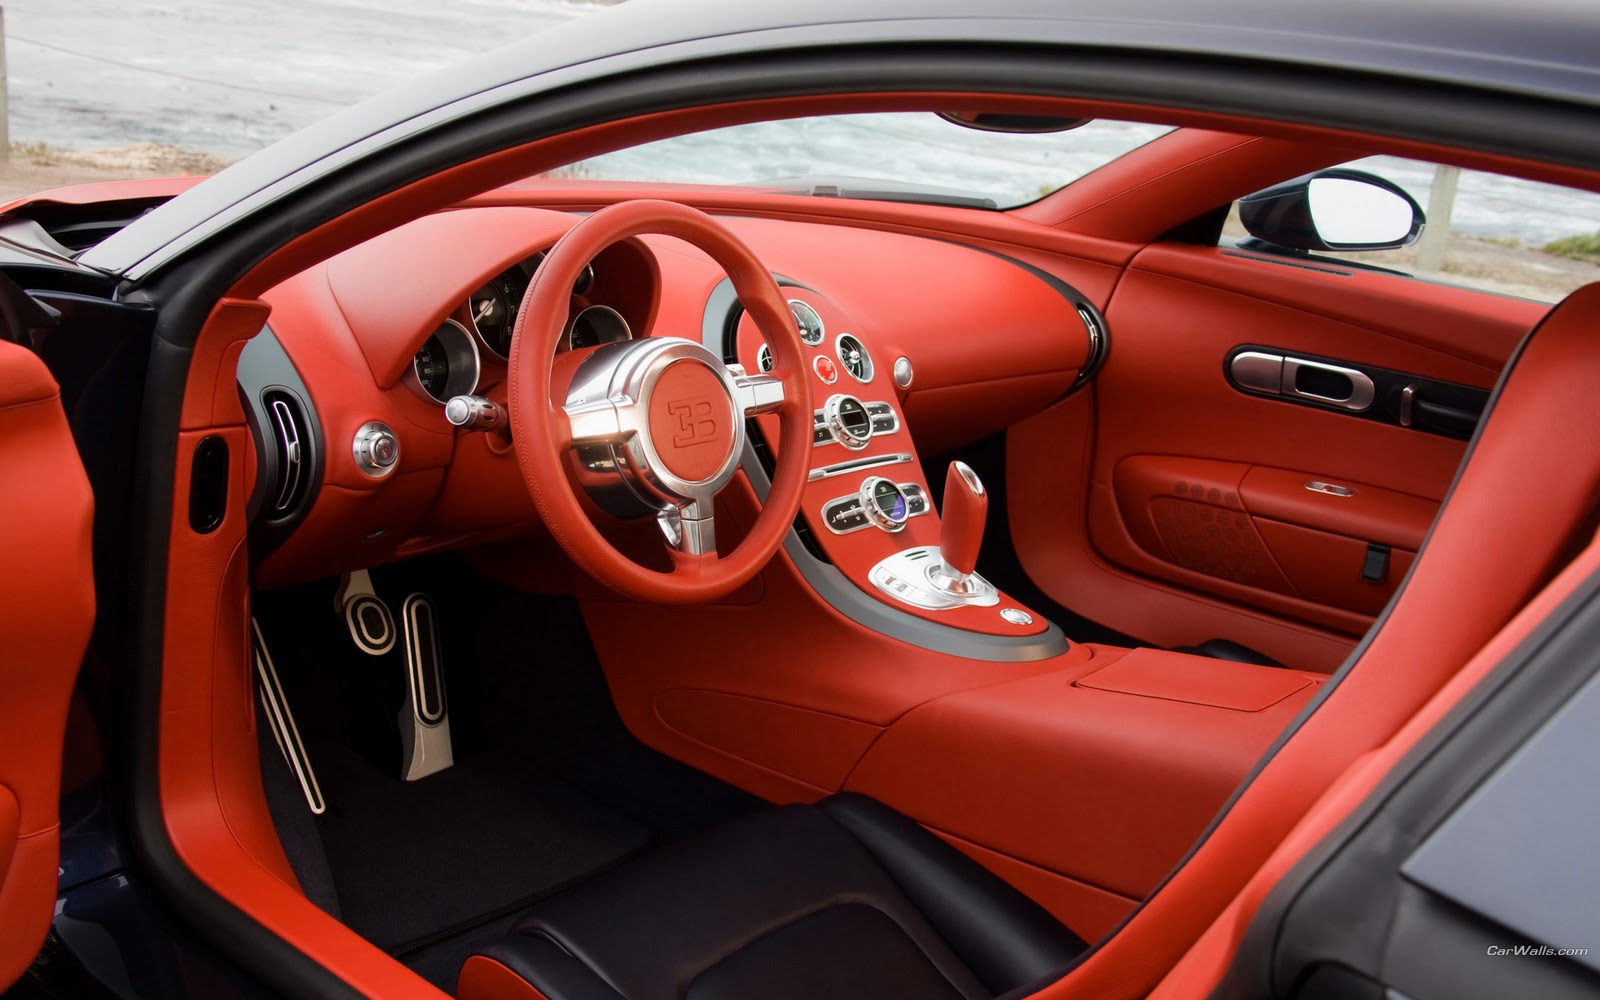 Bugatti car interior wallpapers hd nice wallpapers - Nice interior pic ...